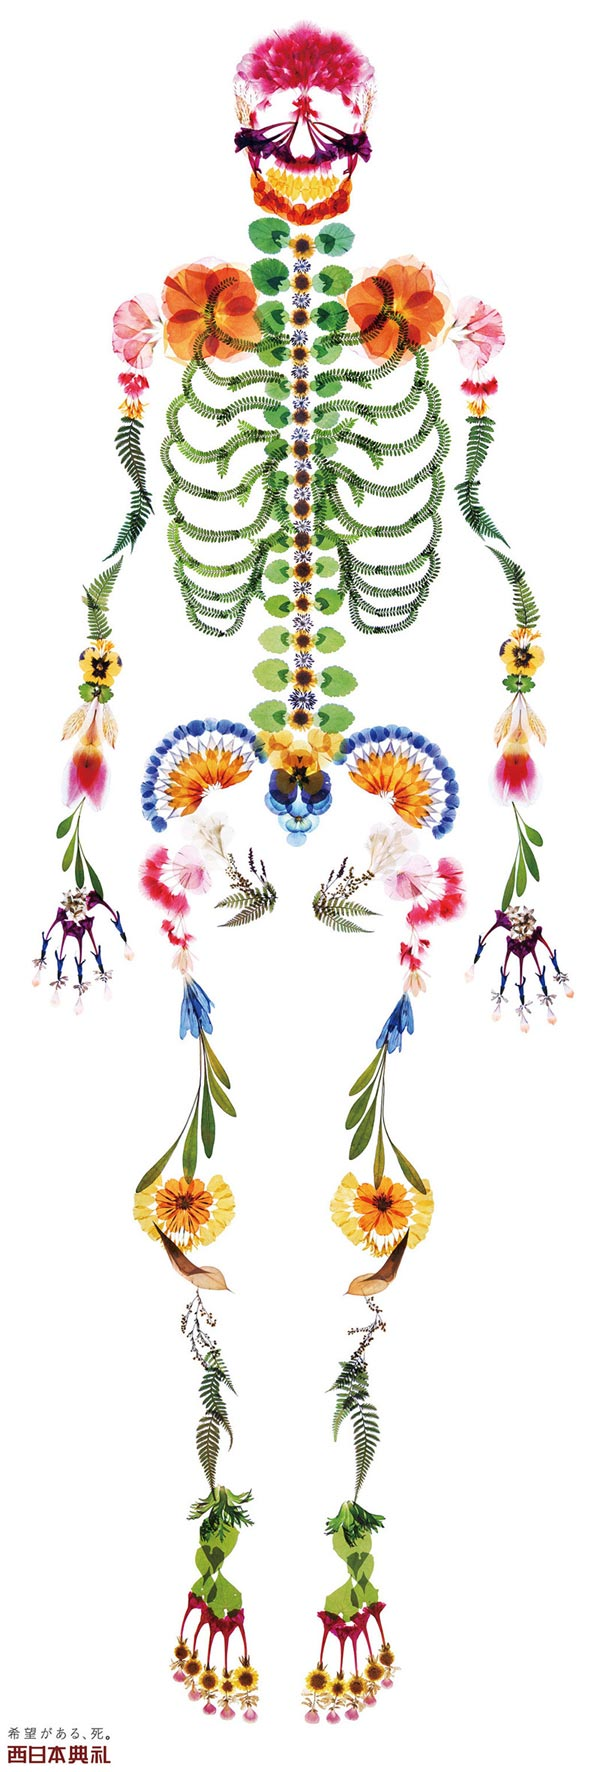 Life-size Human Skeleton Made of Flowers